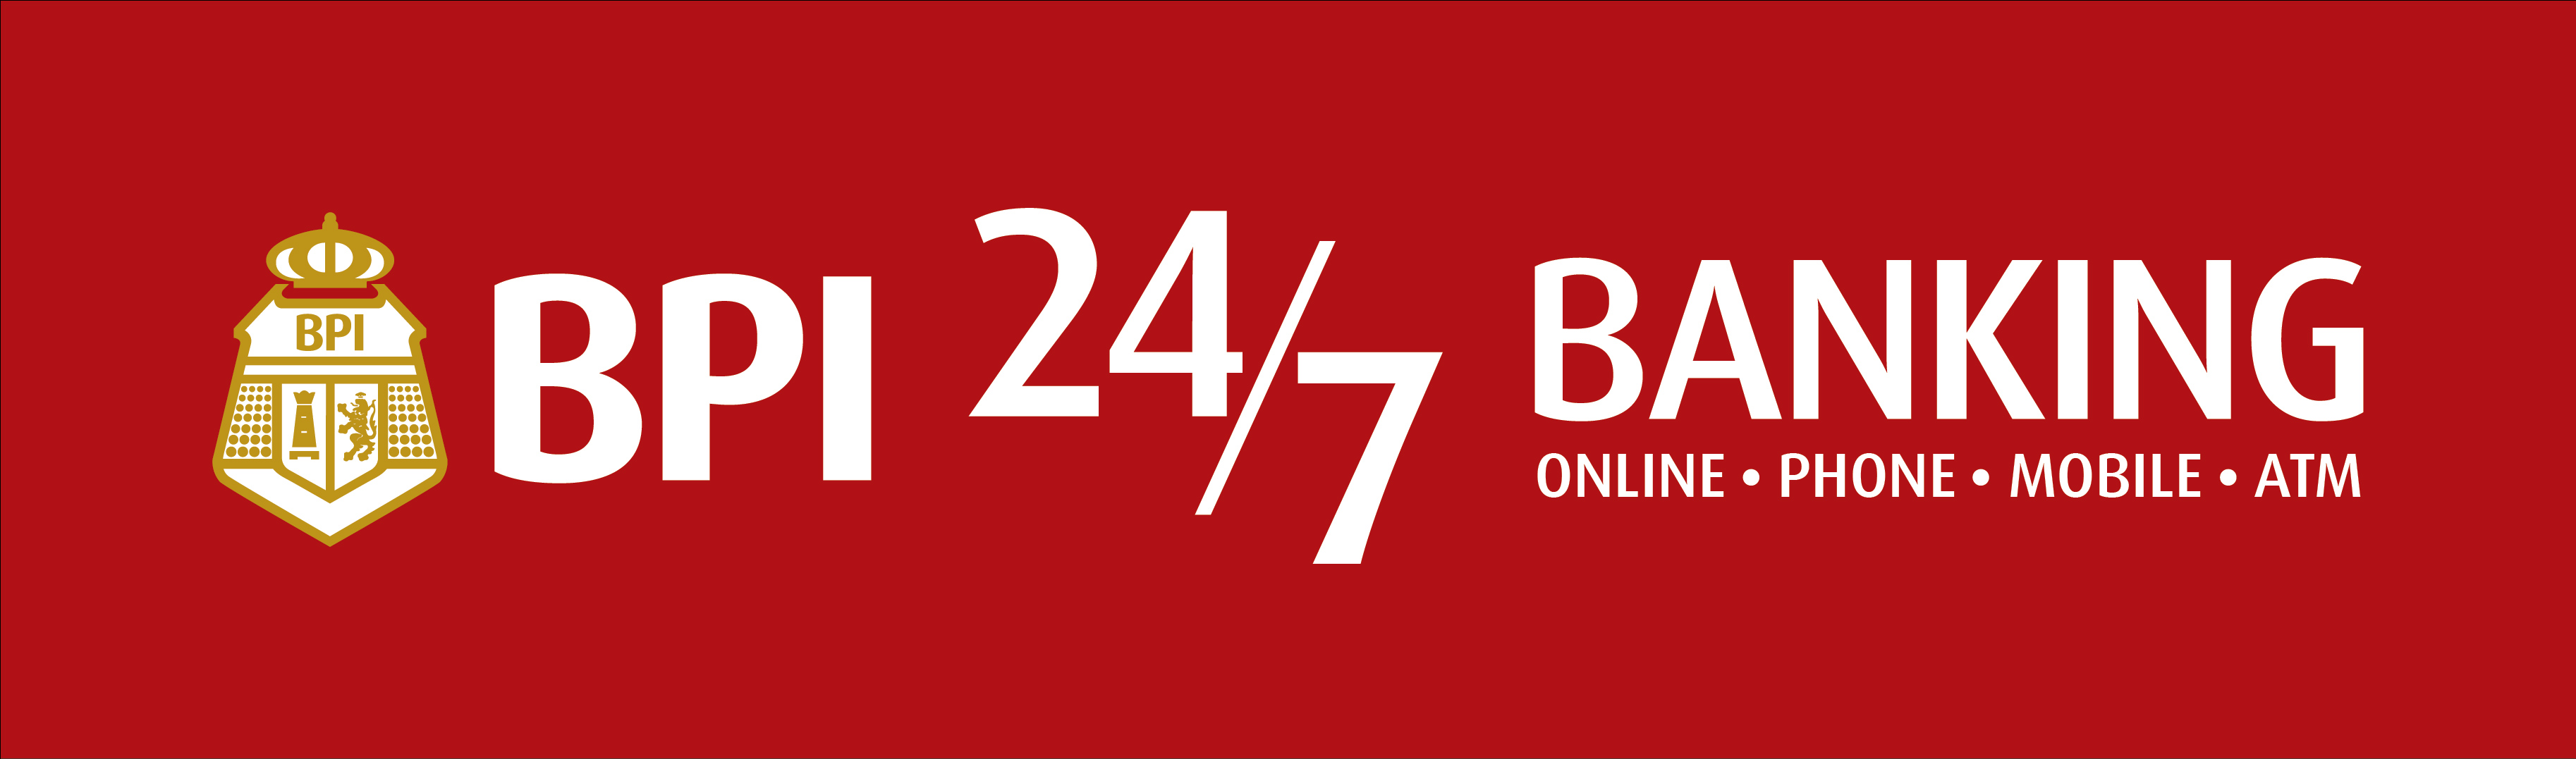 BPI 24/7's Rewards Bill Payers with Brand New Tablets